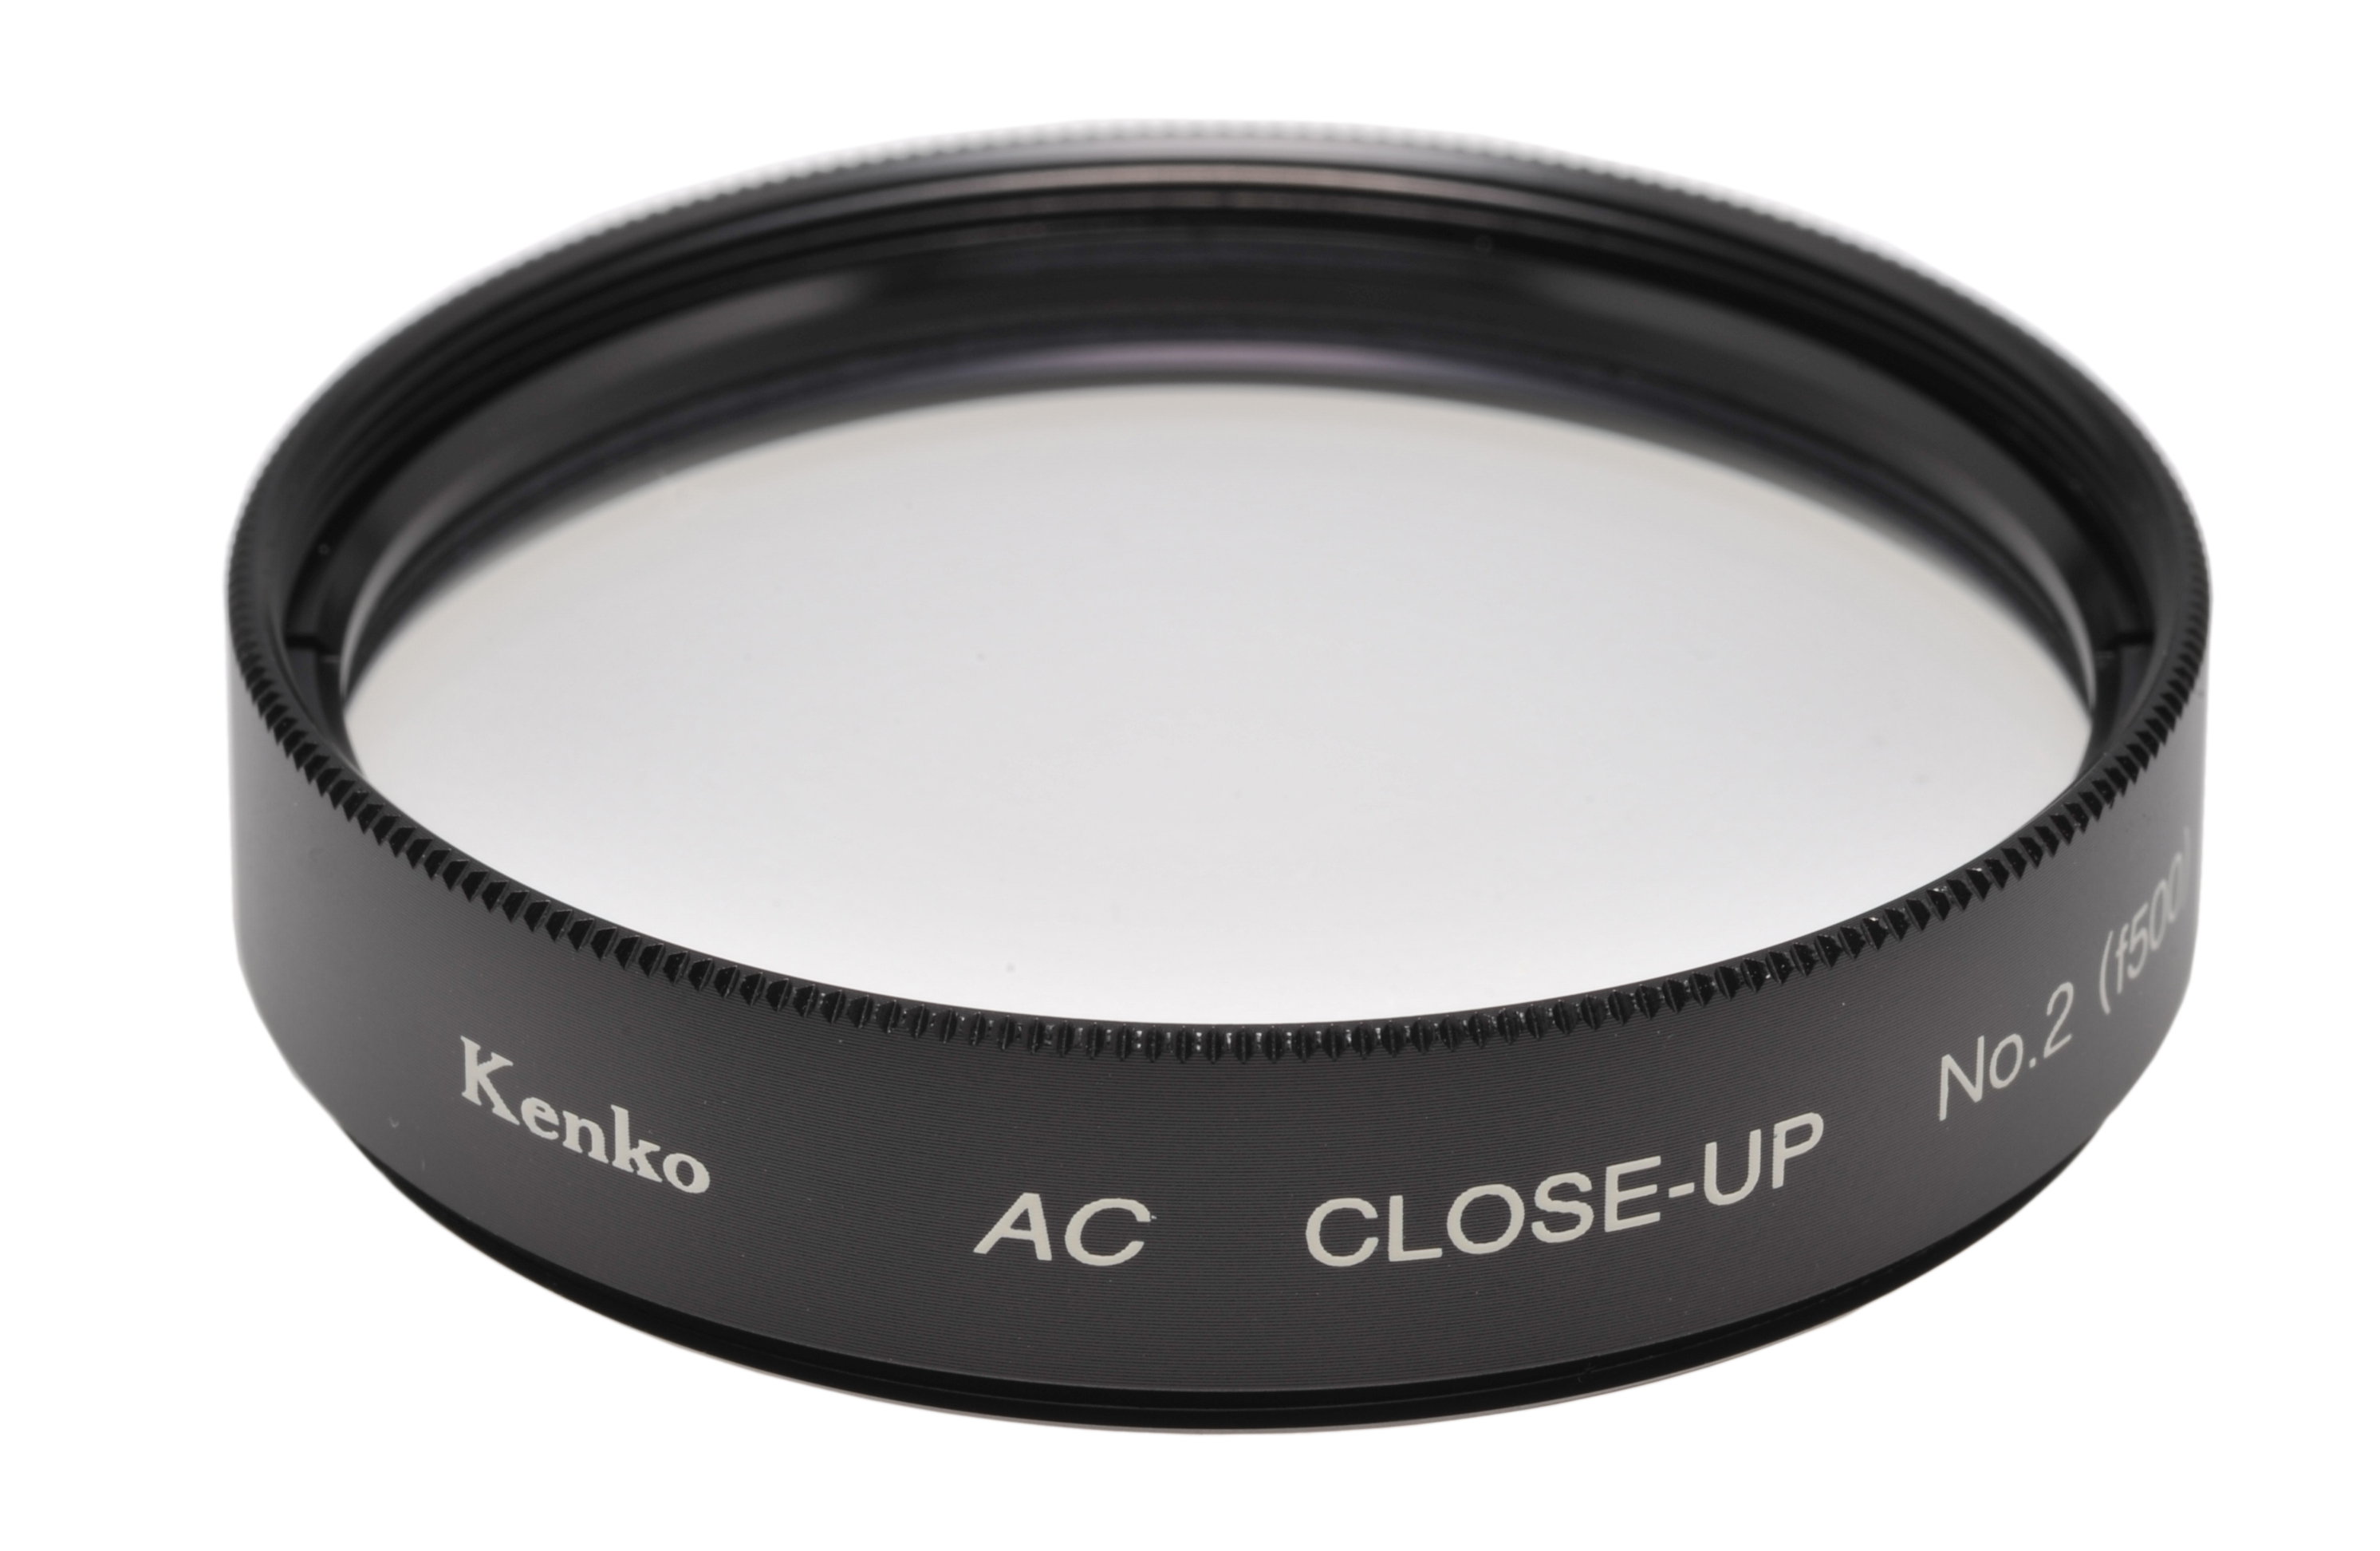 AC Close-up Lenses No.2, 3, 4 and 5- Kenko Global Site